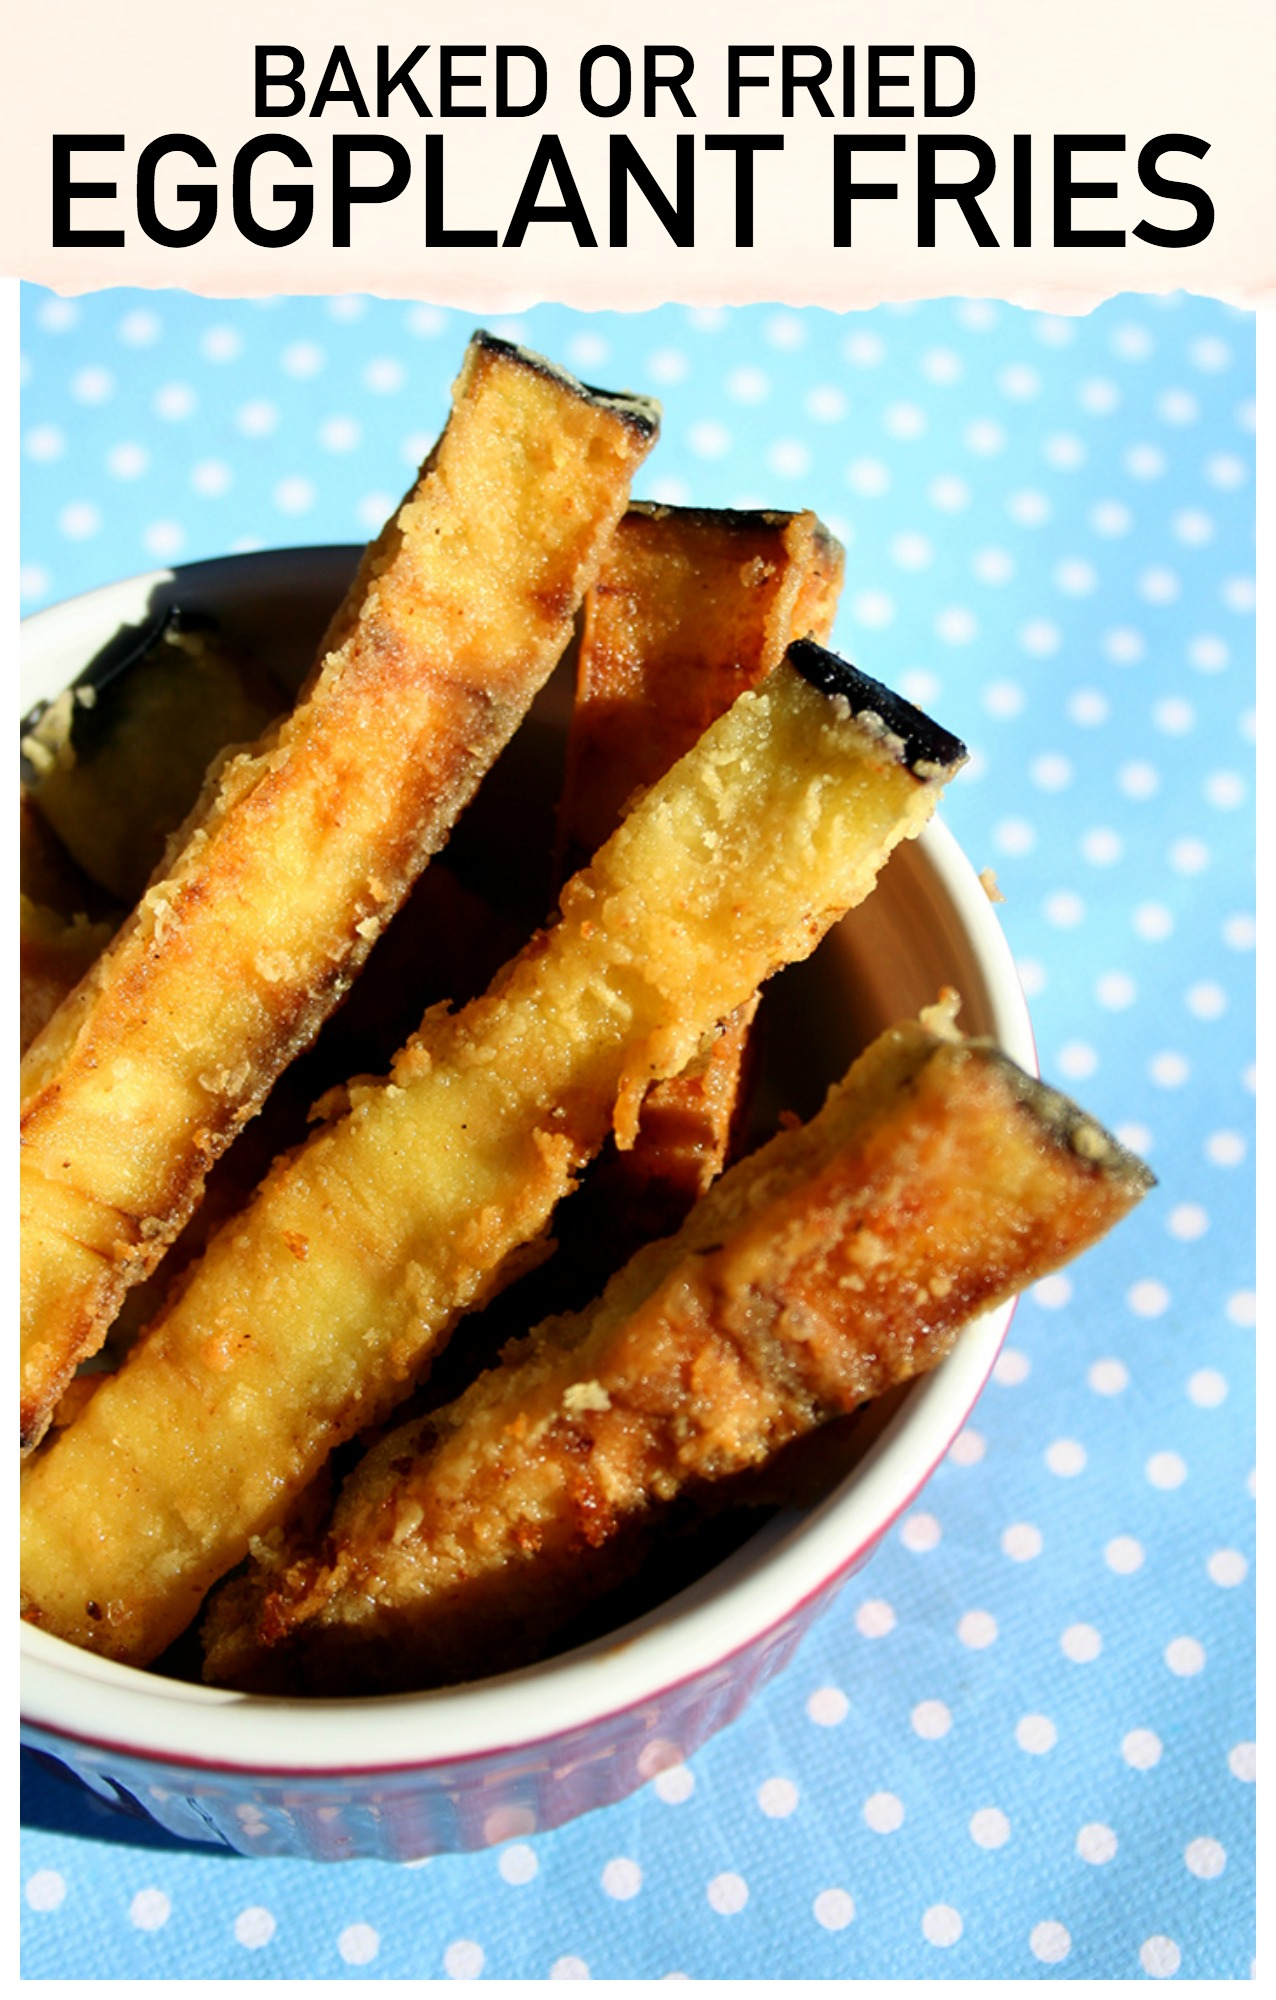 Baked or Fried Eggplant — Delicious and Good-for-You Side Dish!